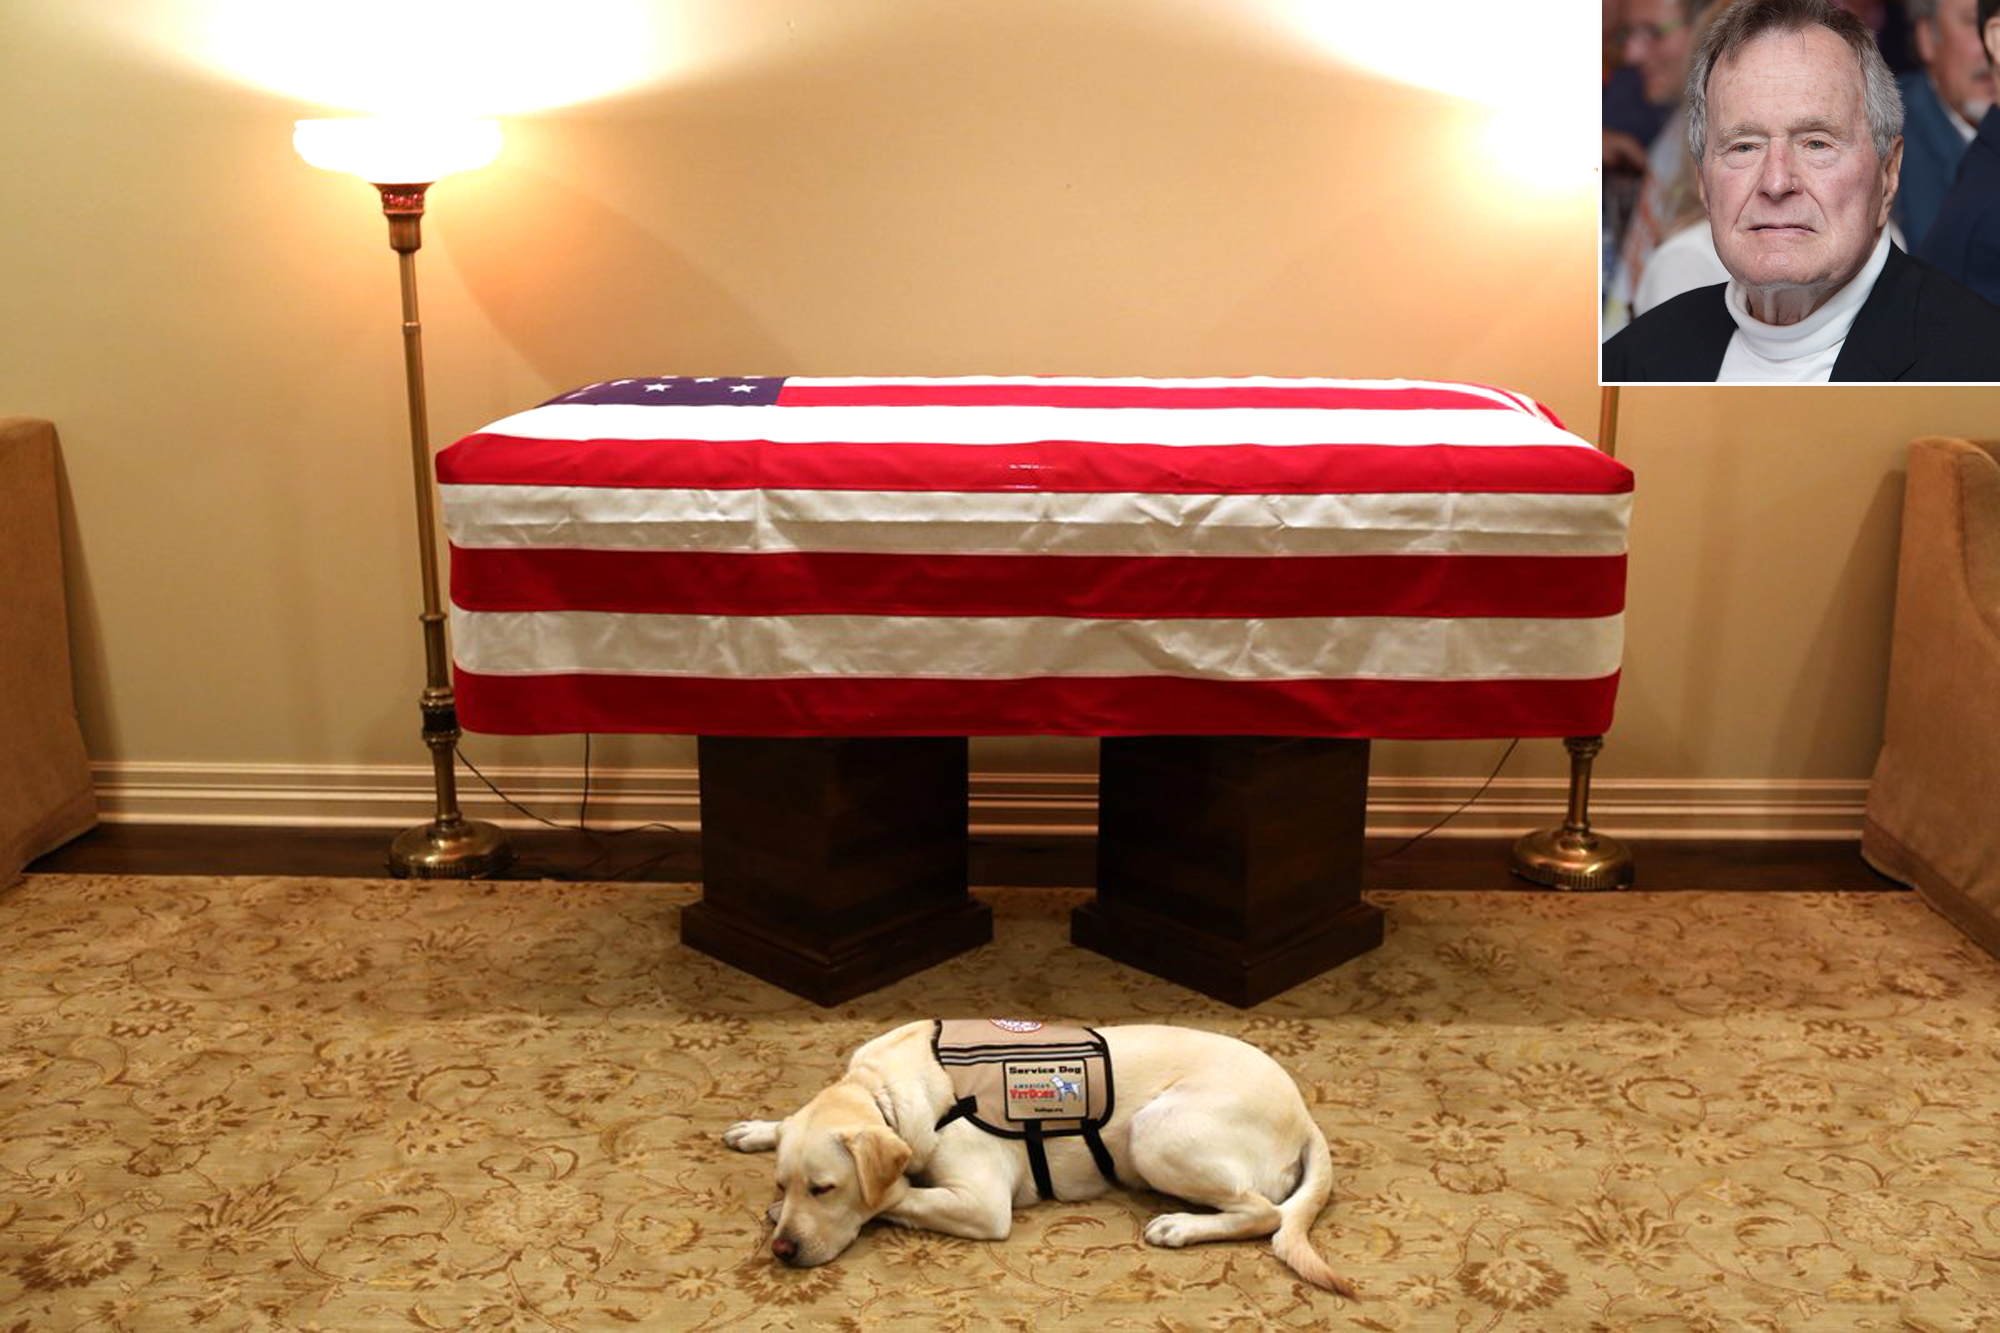 George H.W. Bush's Service Dog Sully Receives Public Service Award for Bringing Love and Joy bush-sully-1-2000